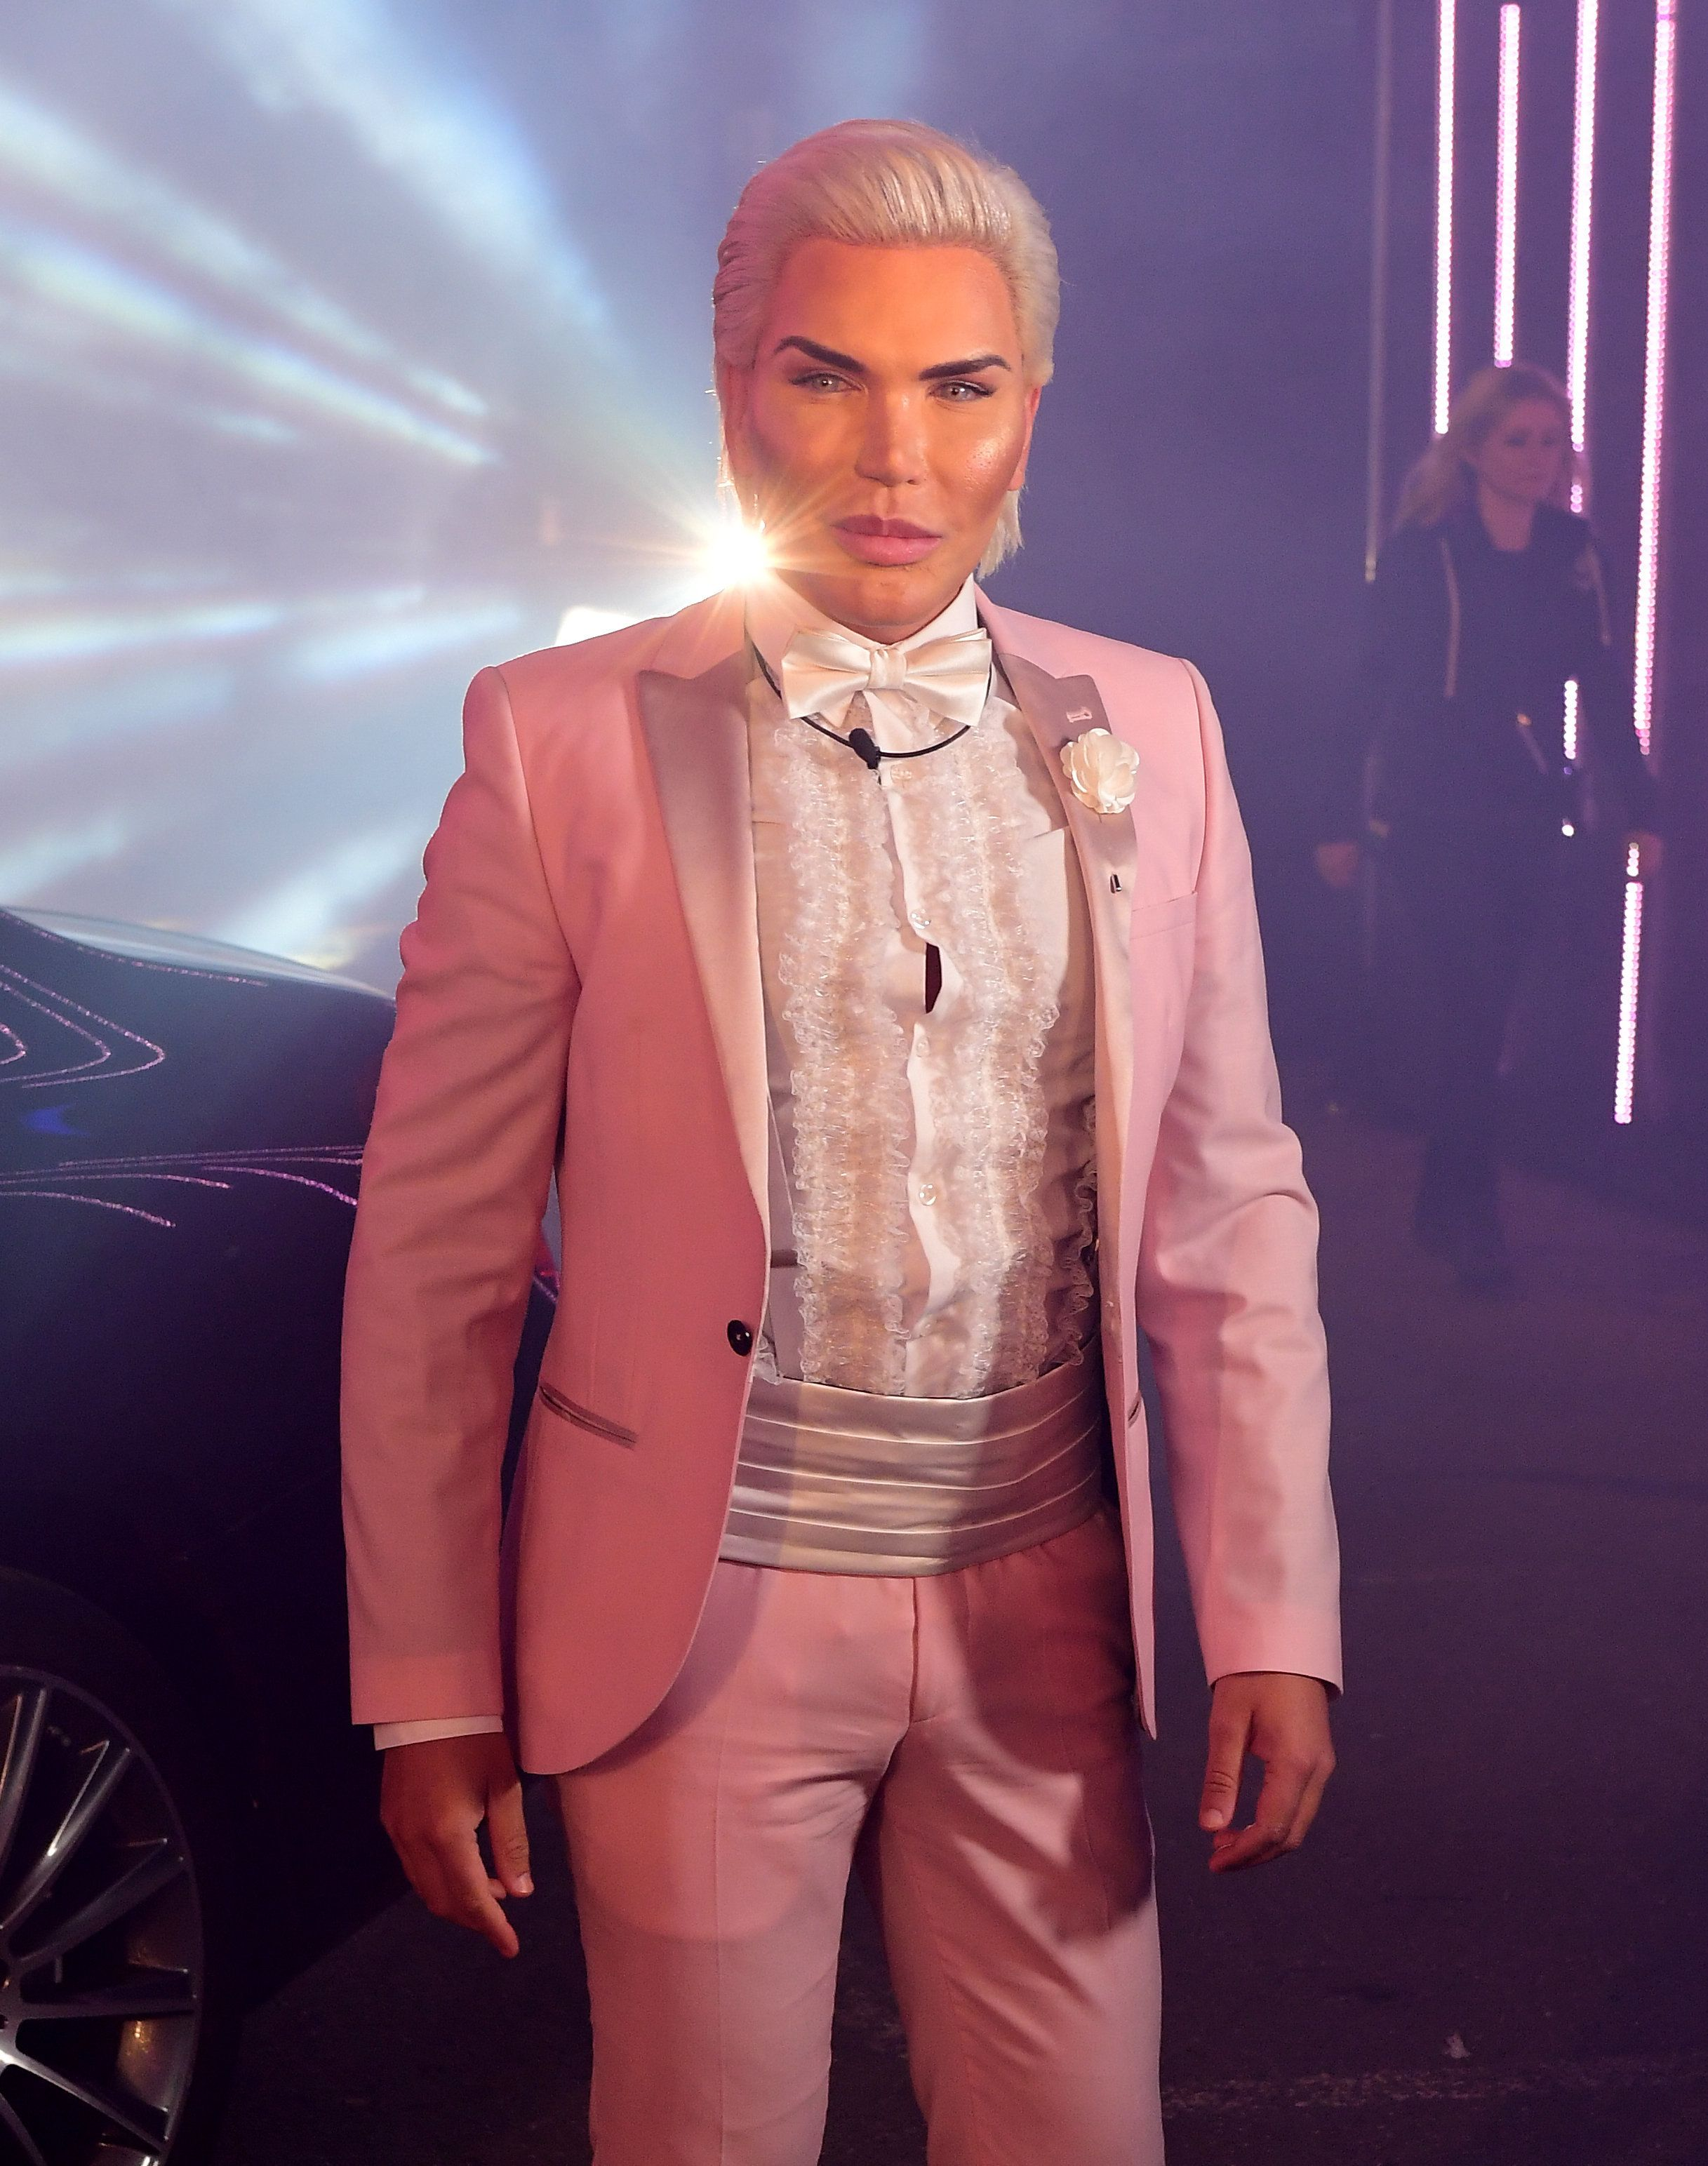 Rodrigo Alves Was Removed From 'CBB' House Over 'Inappropriate' Incident, Says Dan